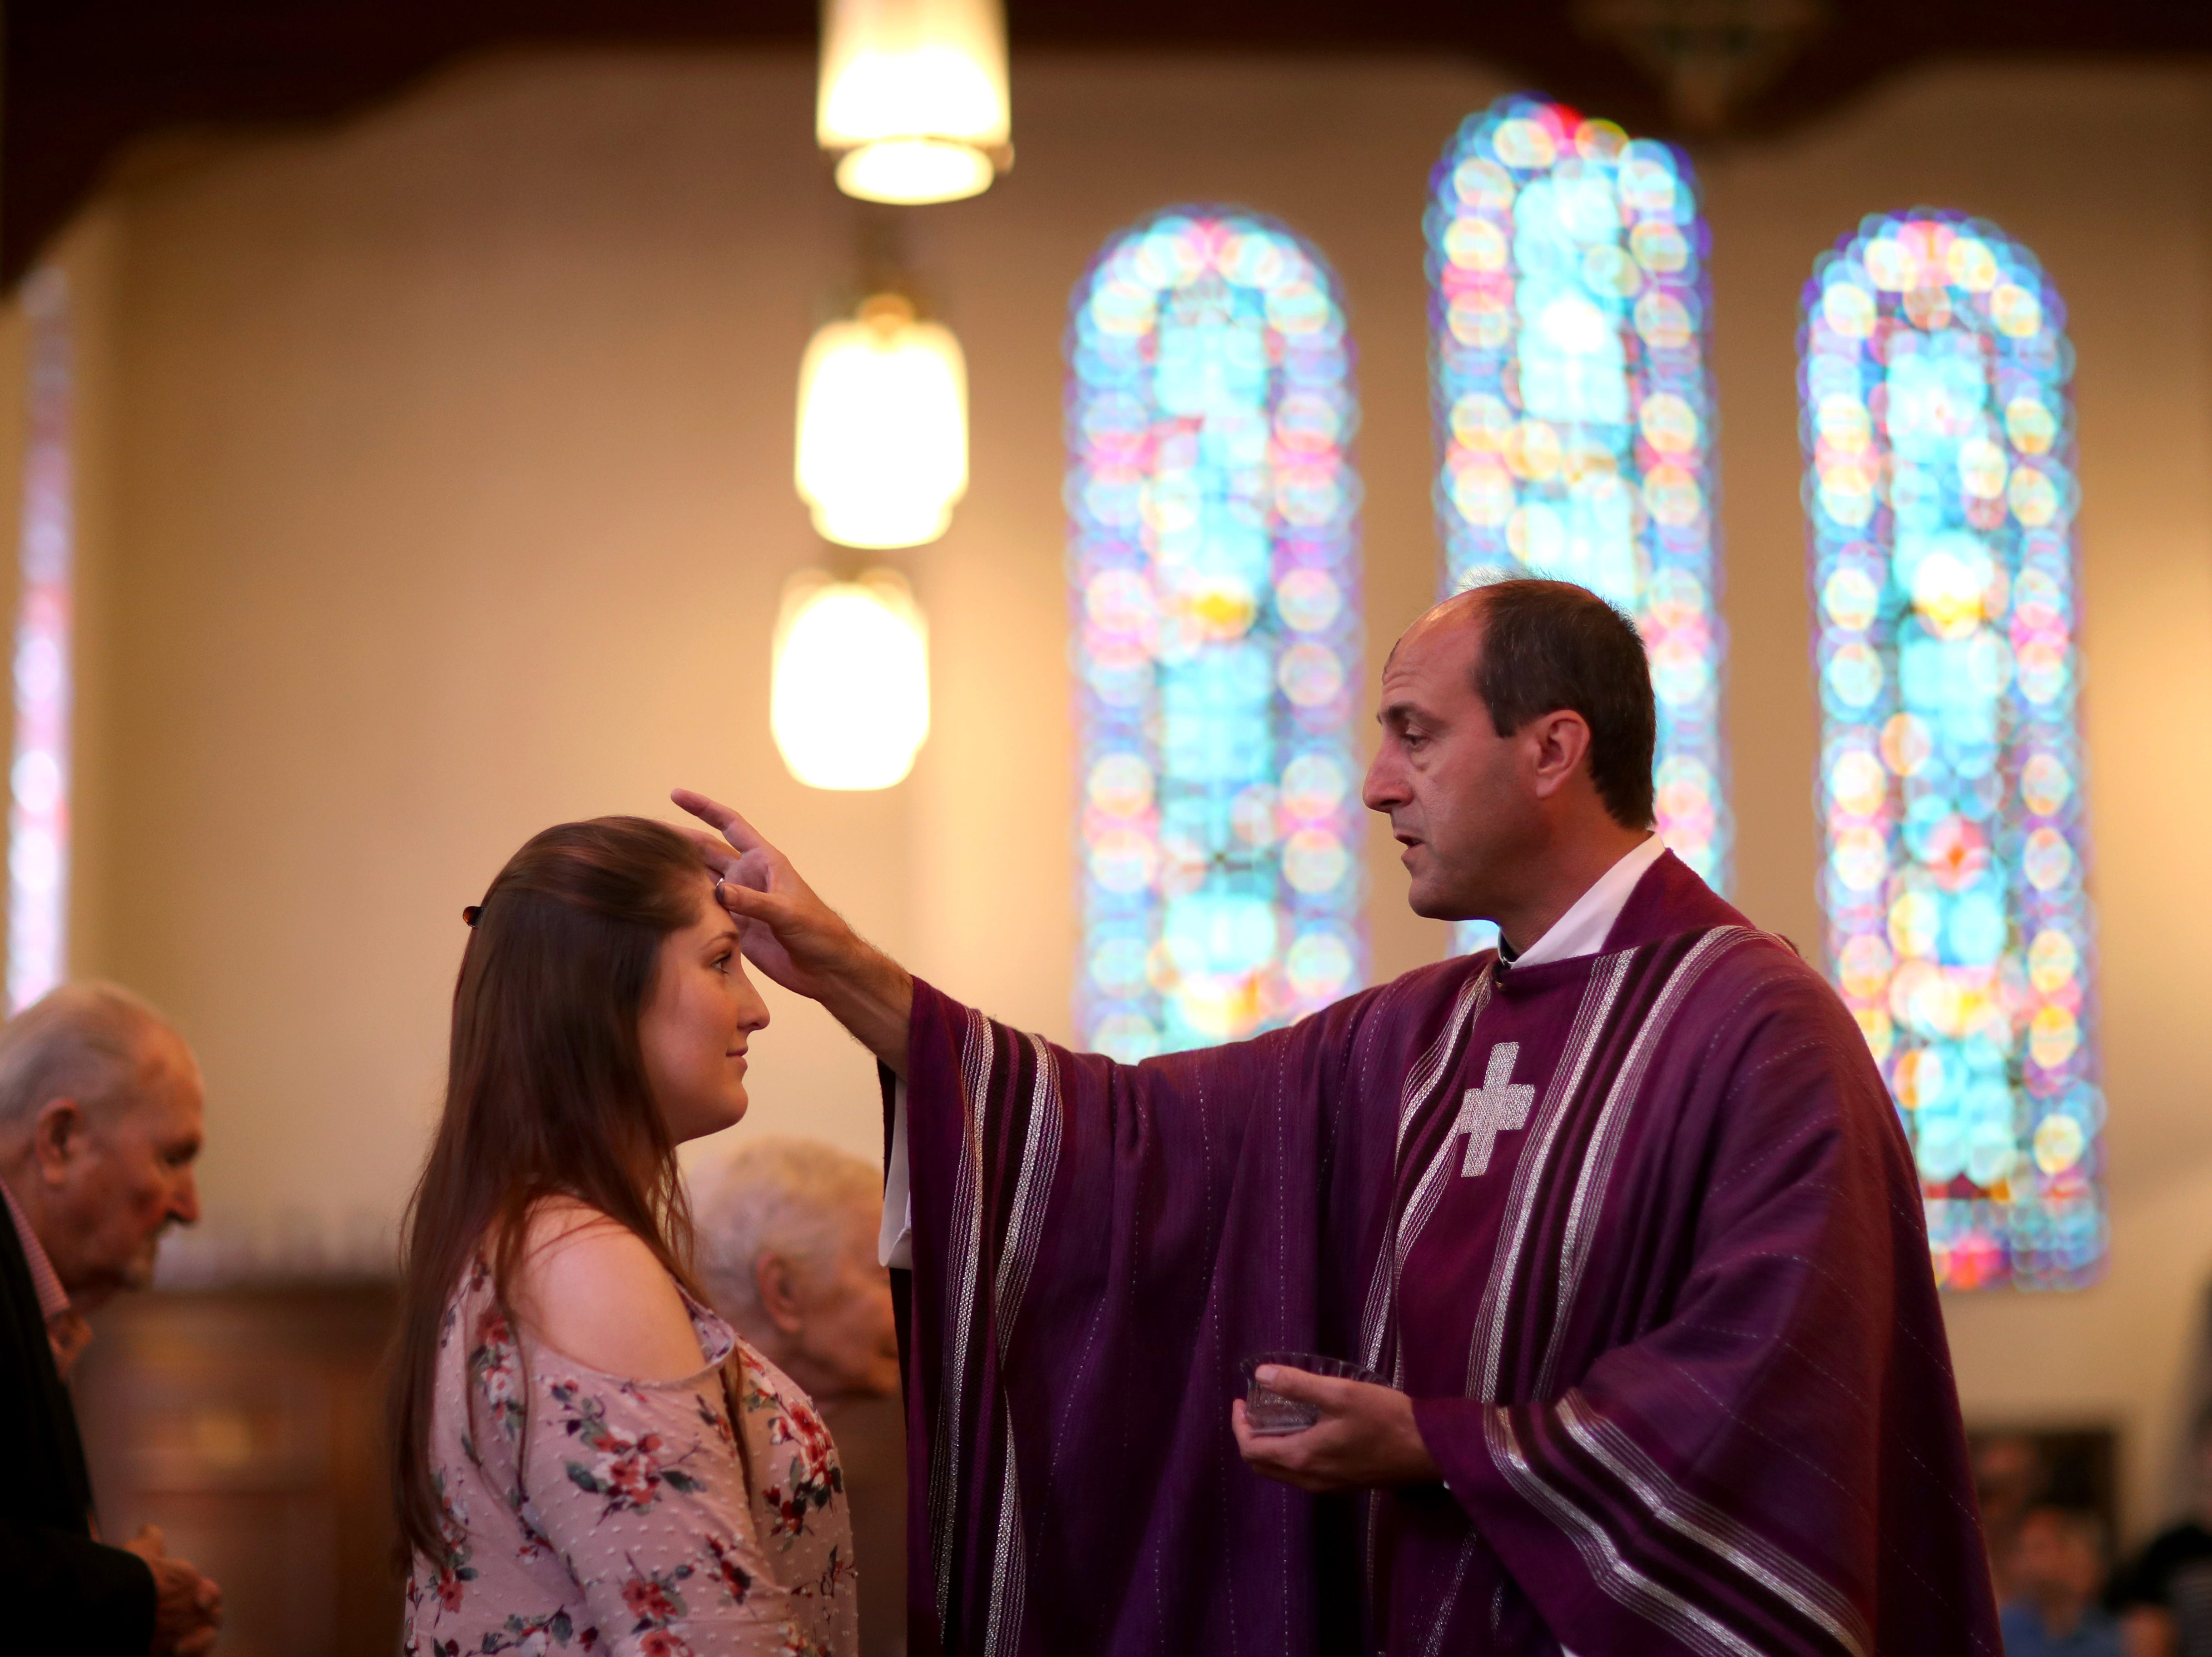 Sydney Sharp is marked with a cross by Father John Cayer during the Ash Wednesday ceremony at the Co-Cathedral of Saint Thomas More on Wednesday, Feb. 14, 2018.